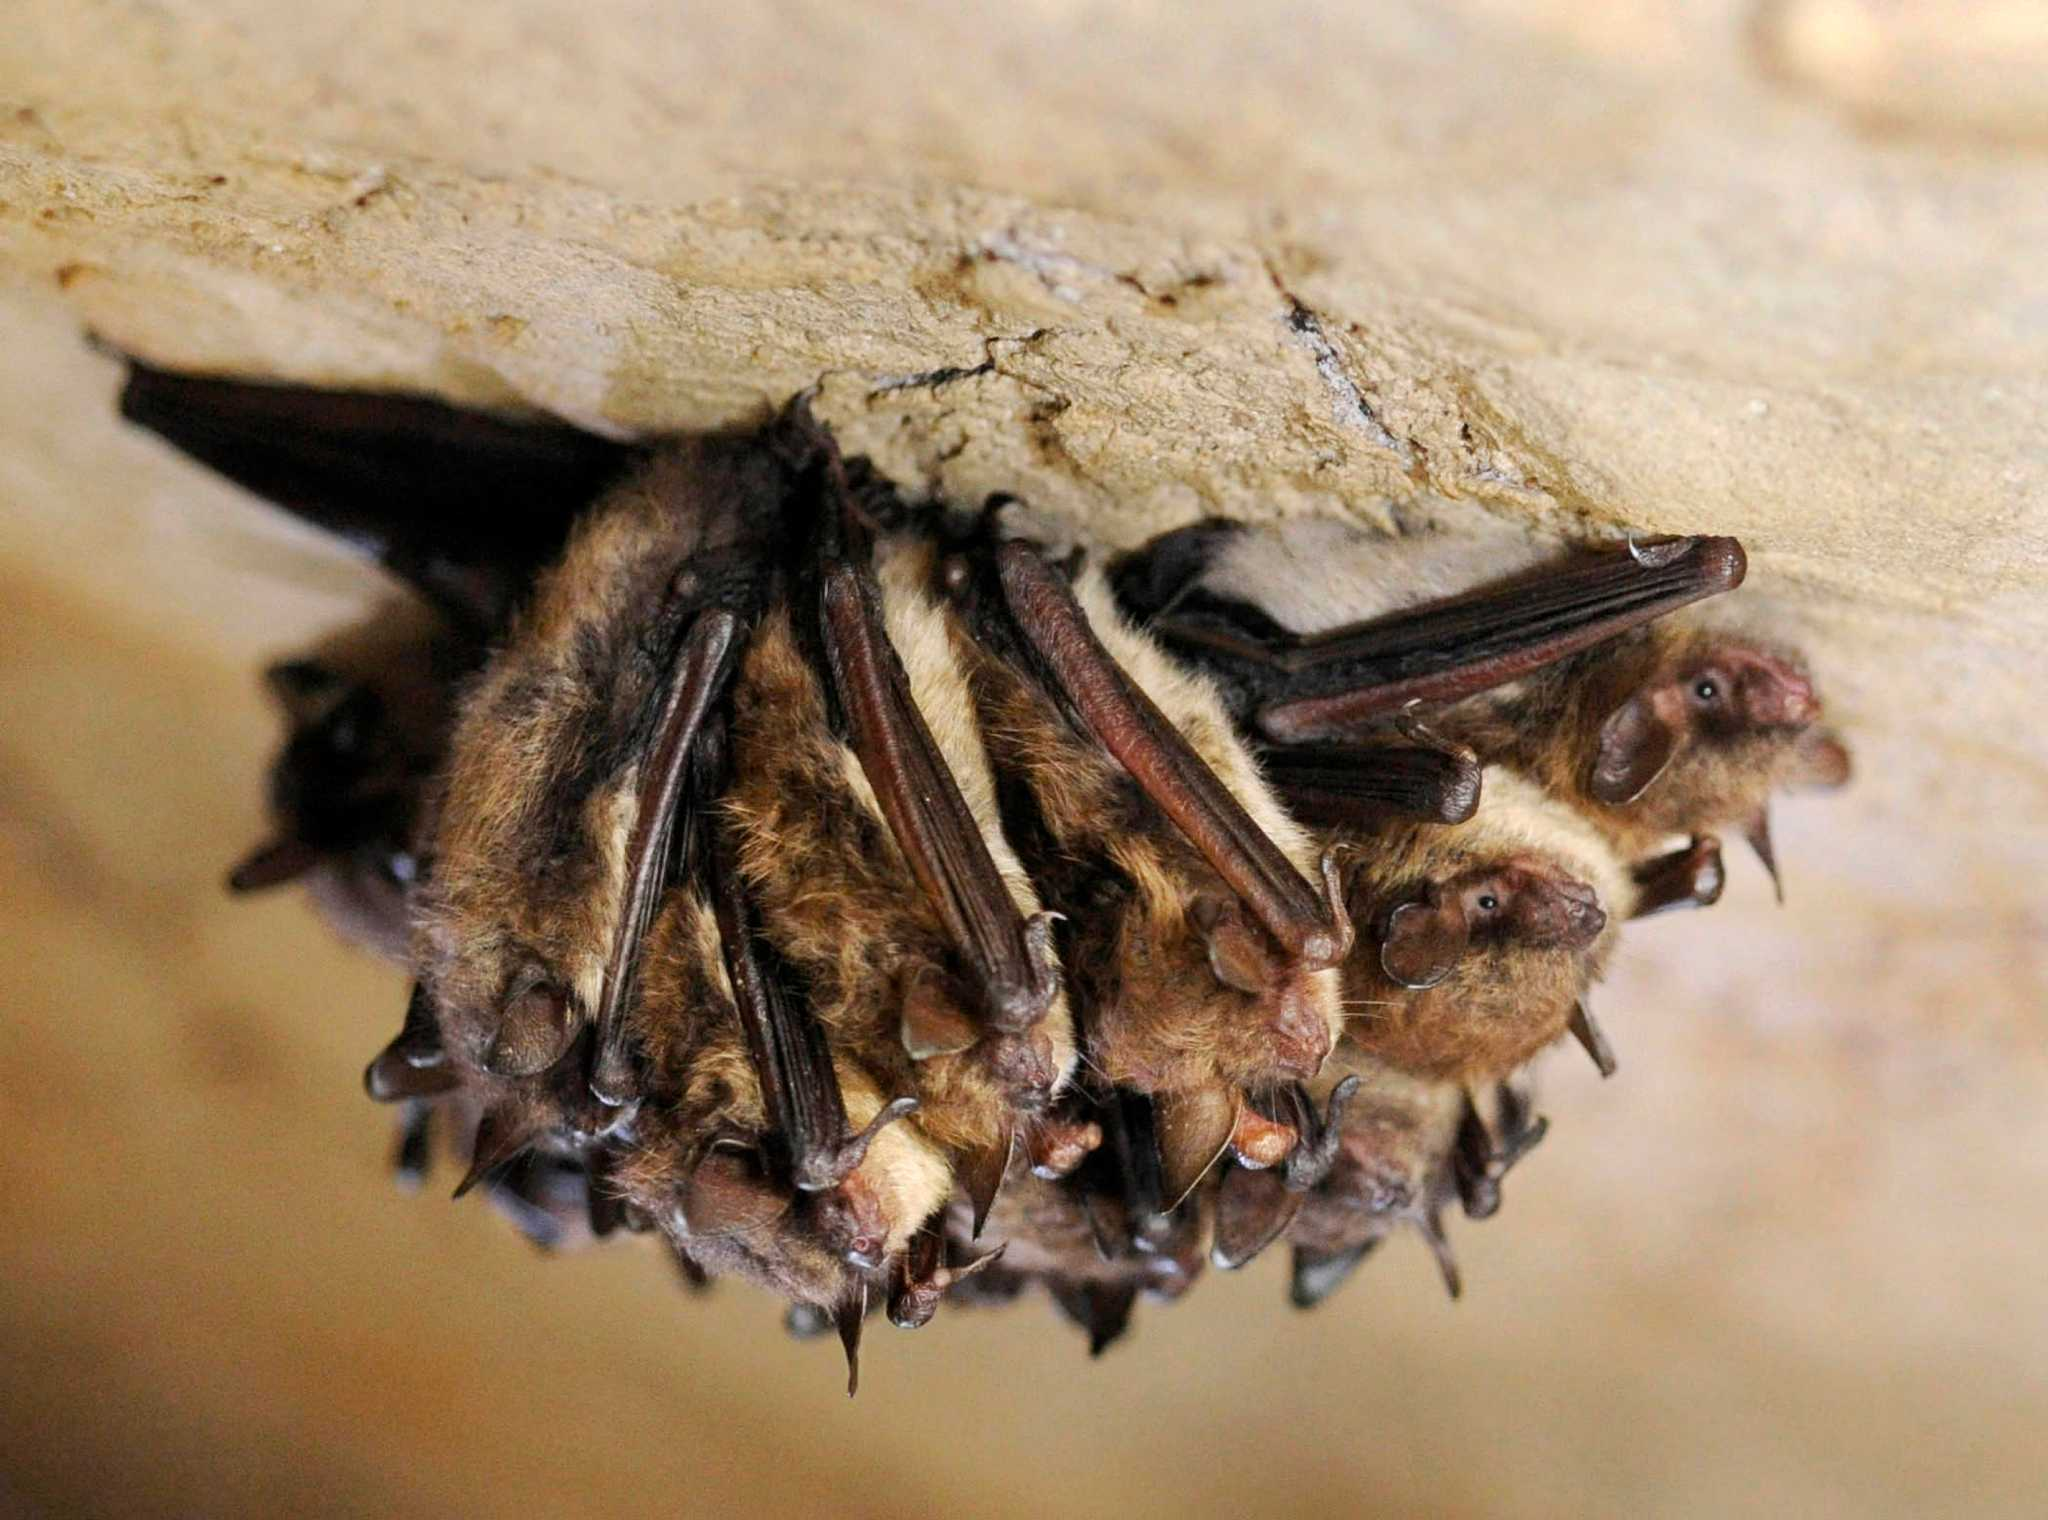 Fungus causes deadly bat disease